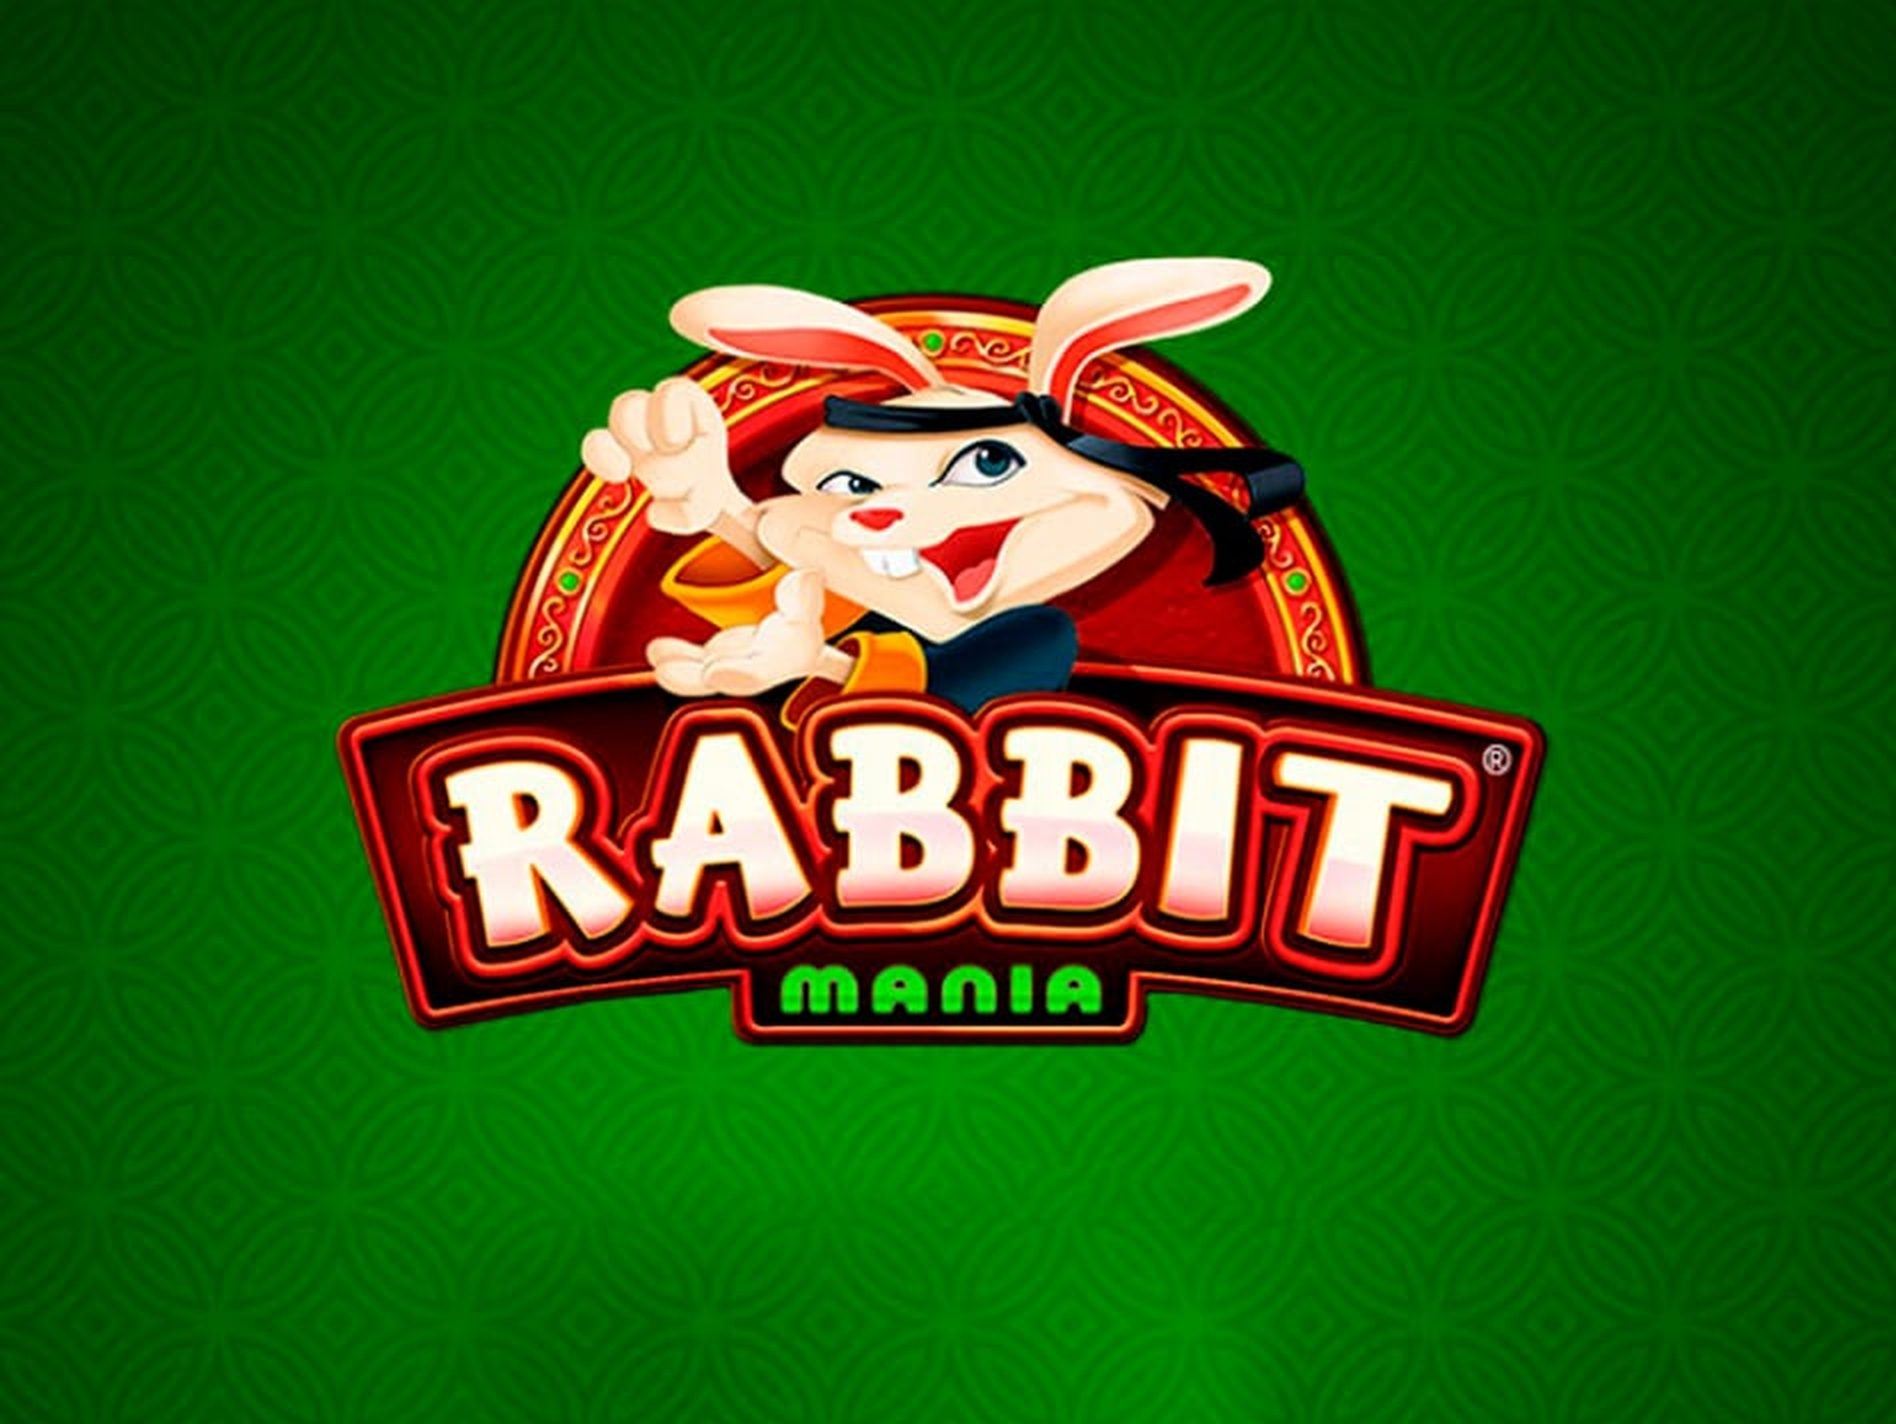 The Rabbit mania Online Slot Demo Game by Zitro